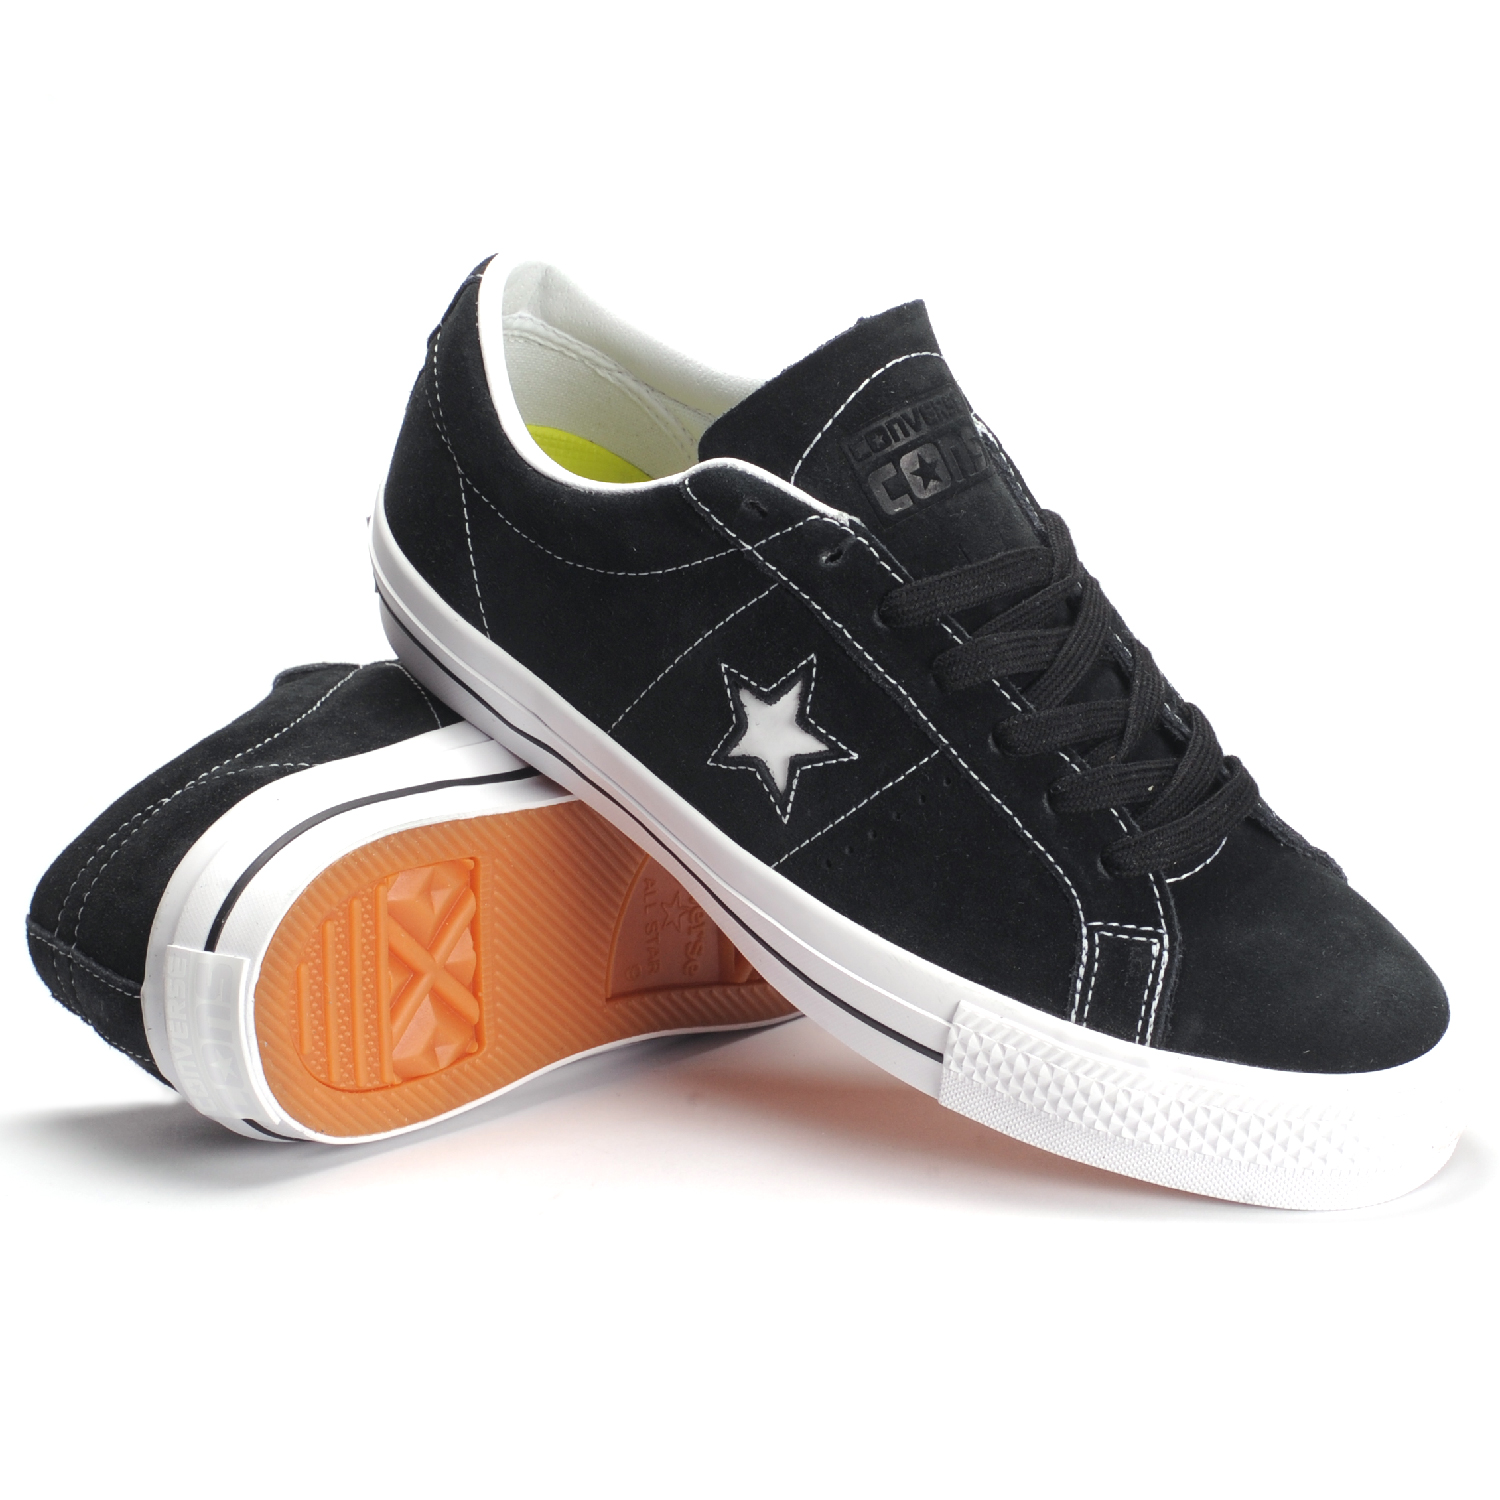 Skate shoes pictures - Skate Shoes Pictures 43